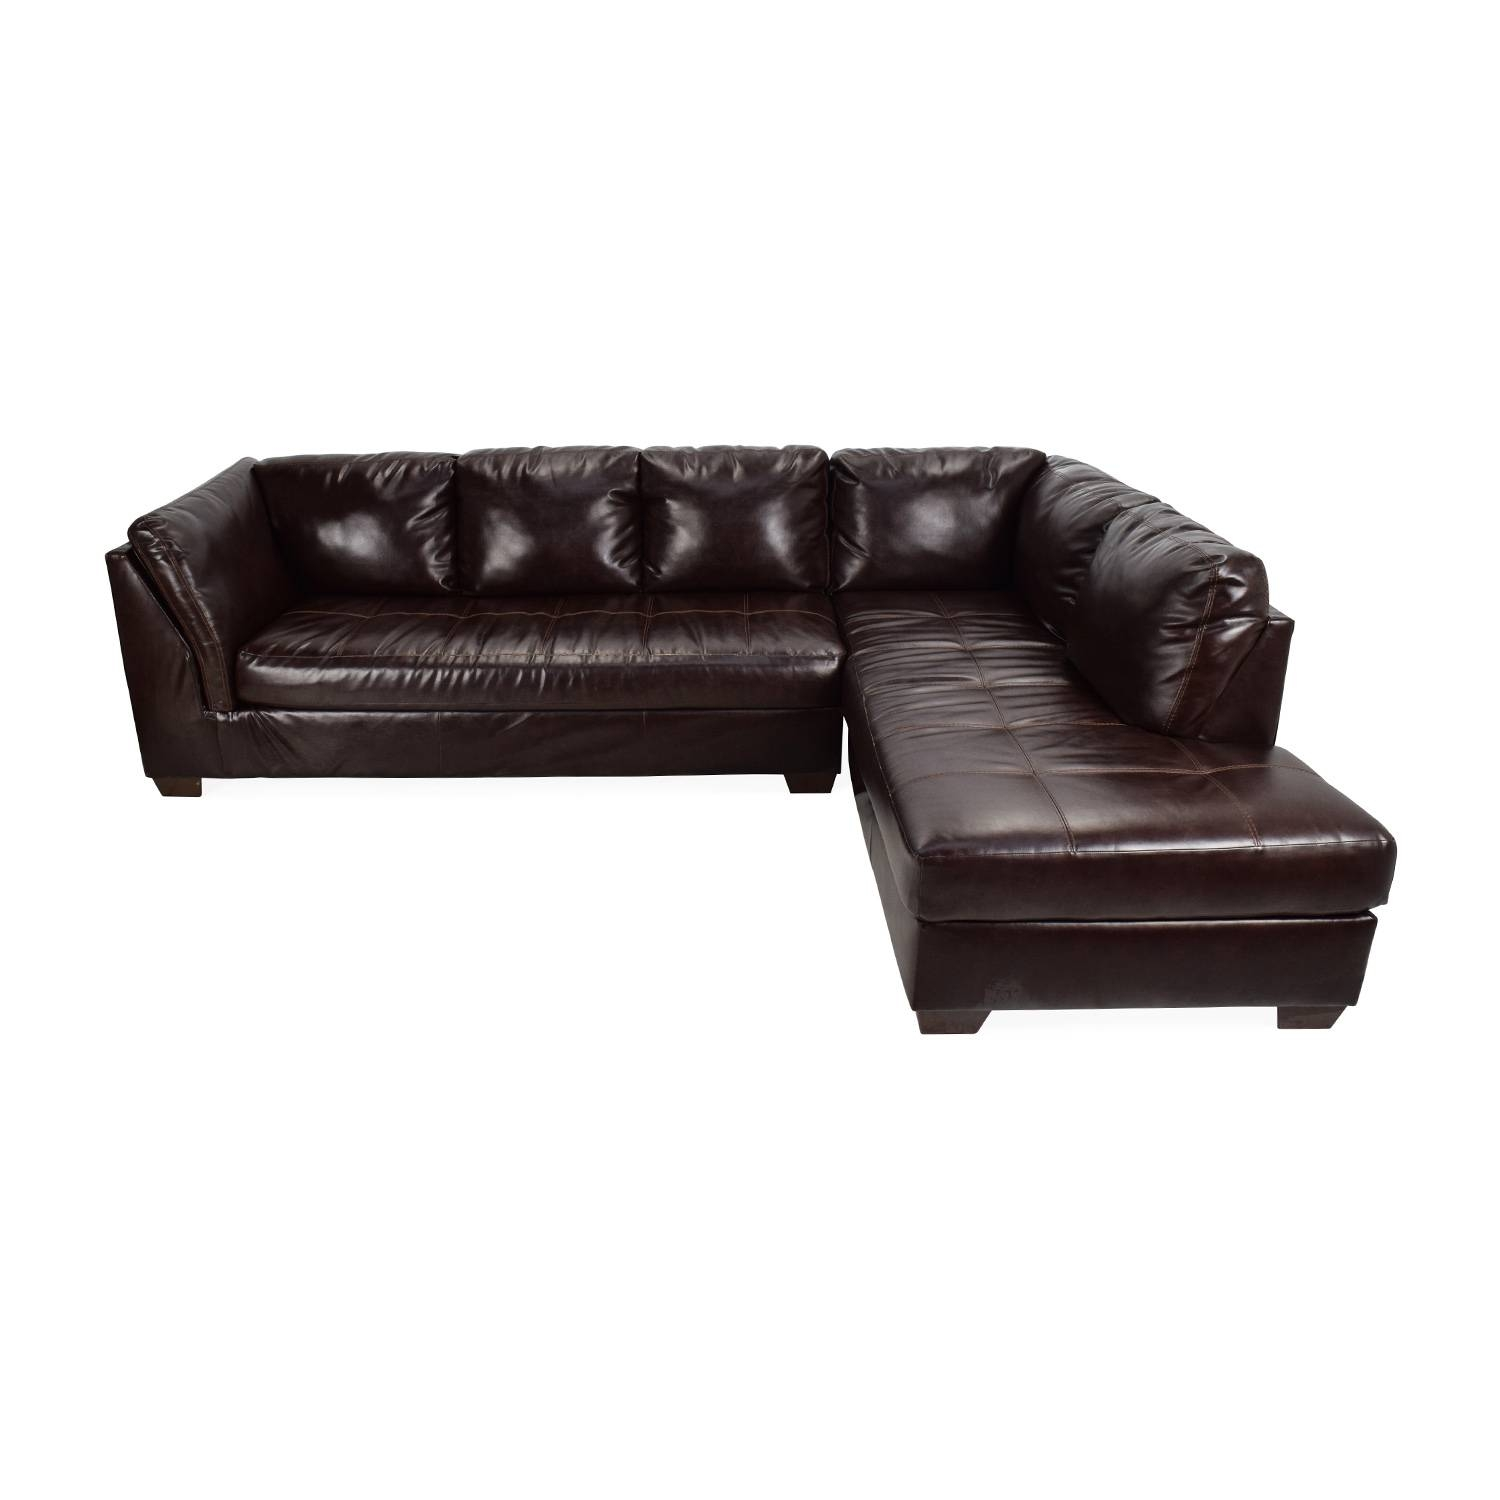 75% Off - Jennifer Convertibles Jennifer Convertibles Brown with regard to Jennifer Sofas and Sectionals (Image 2 of 15)